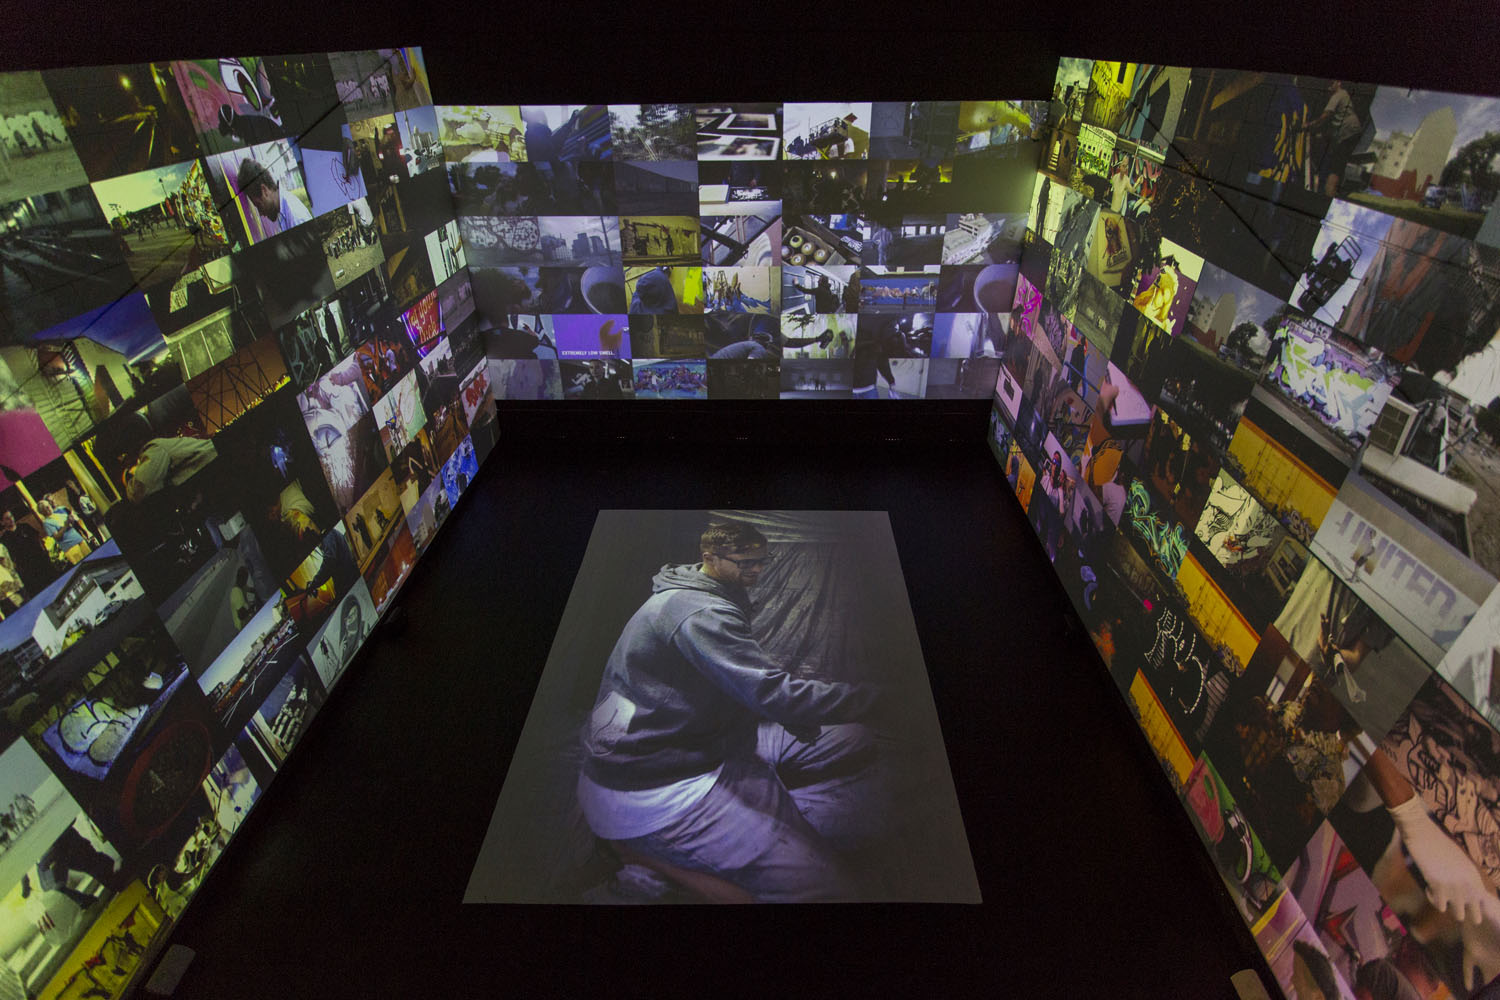 Selina MIles video installation completed 2, Spectrum 2016 Christchurch – credit Luke Shirlaw